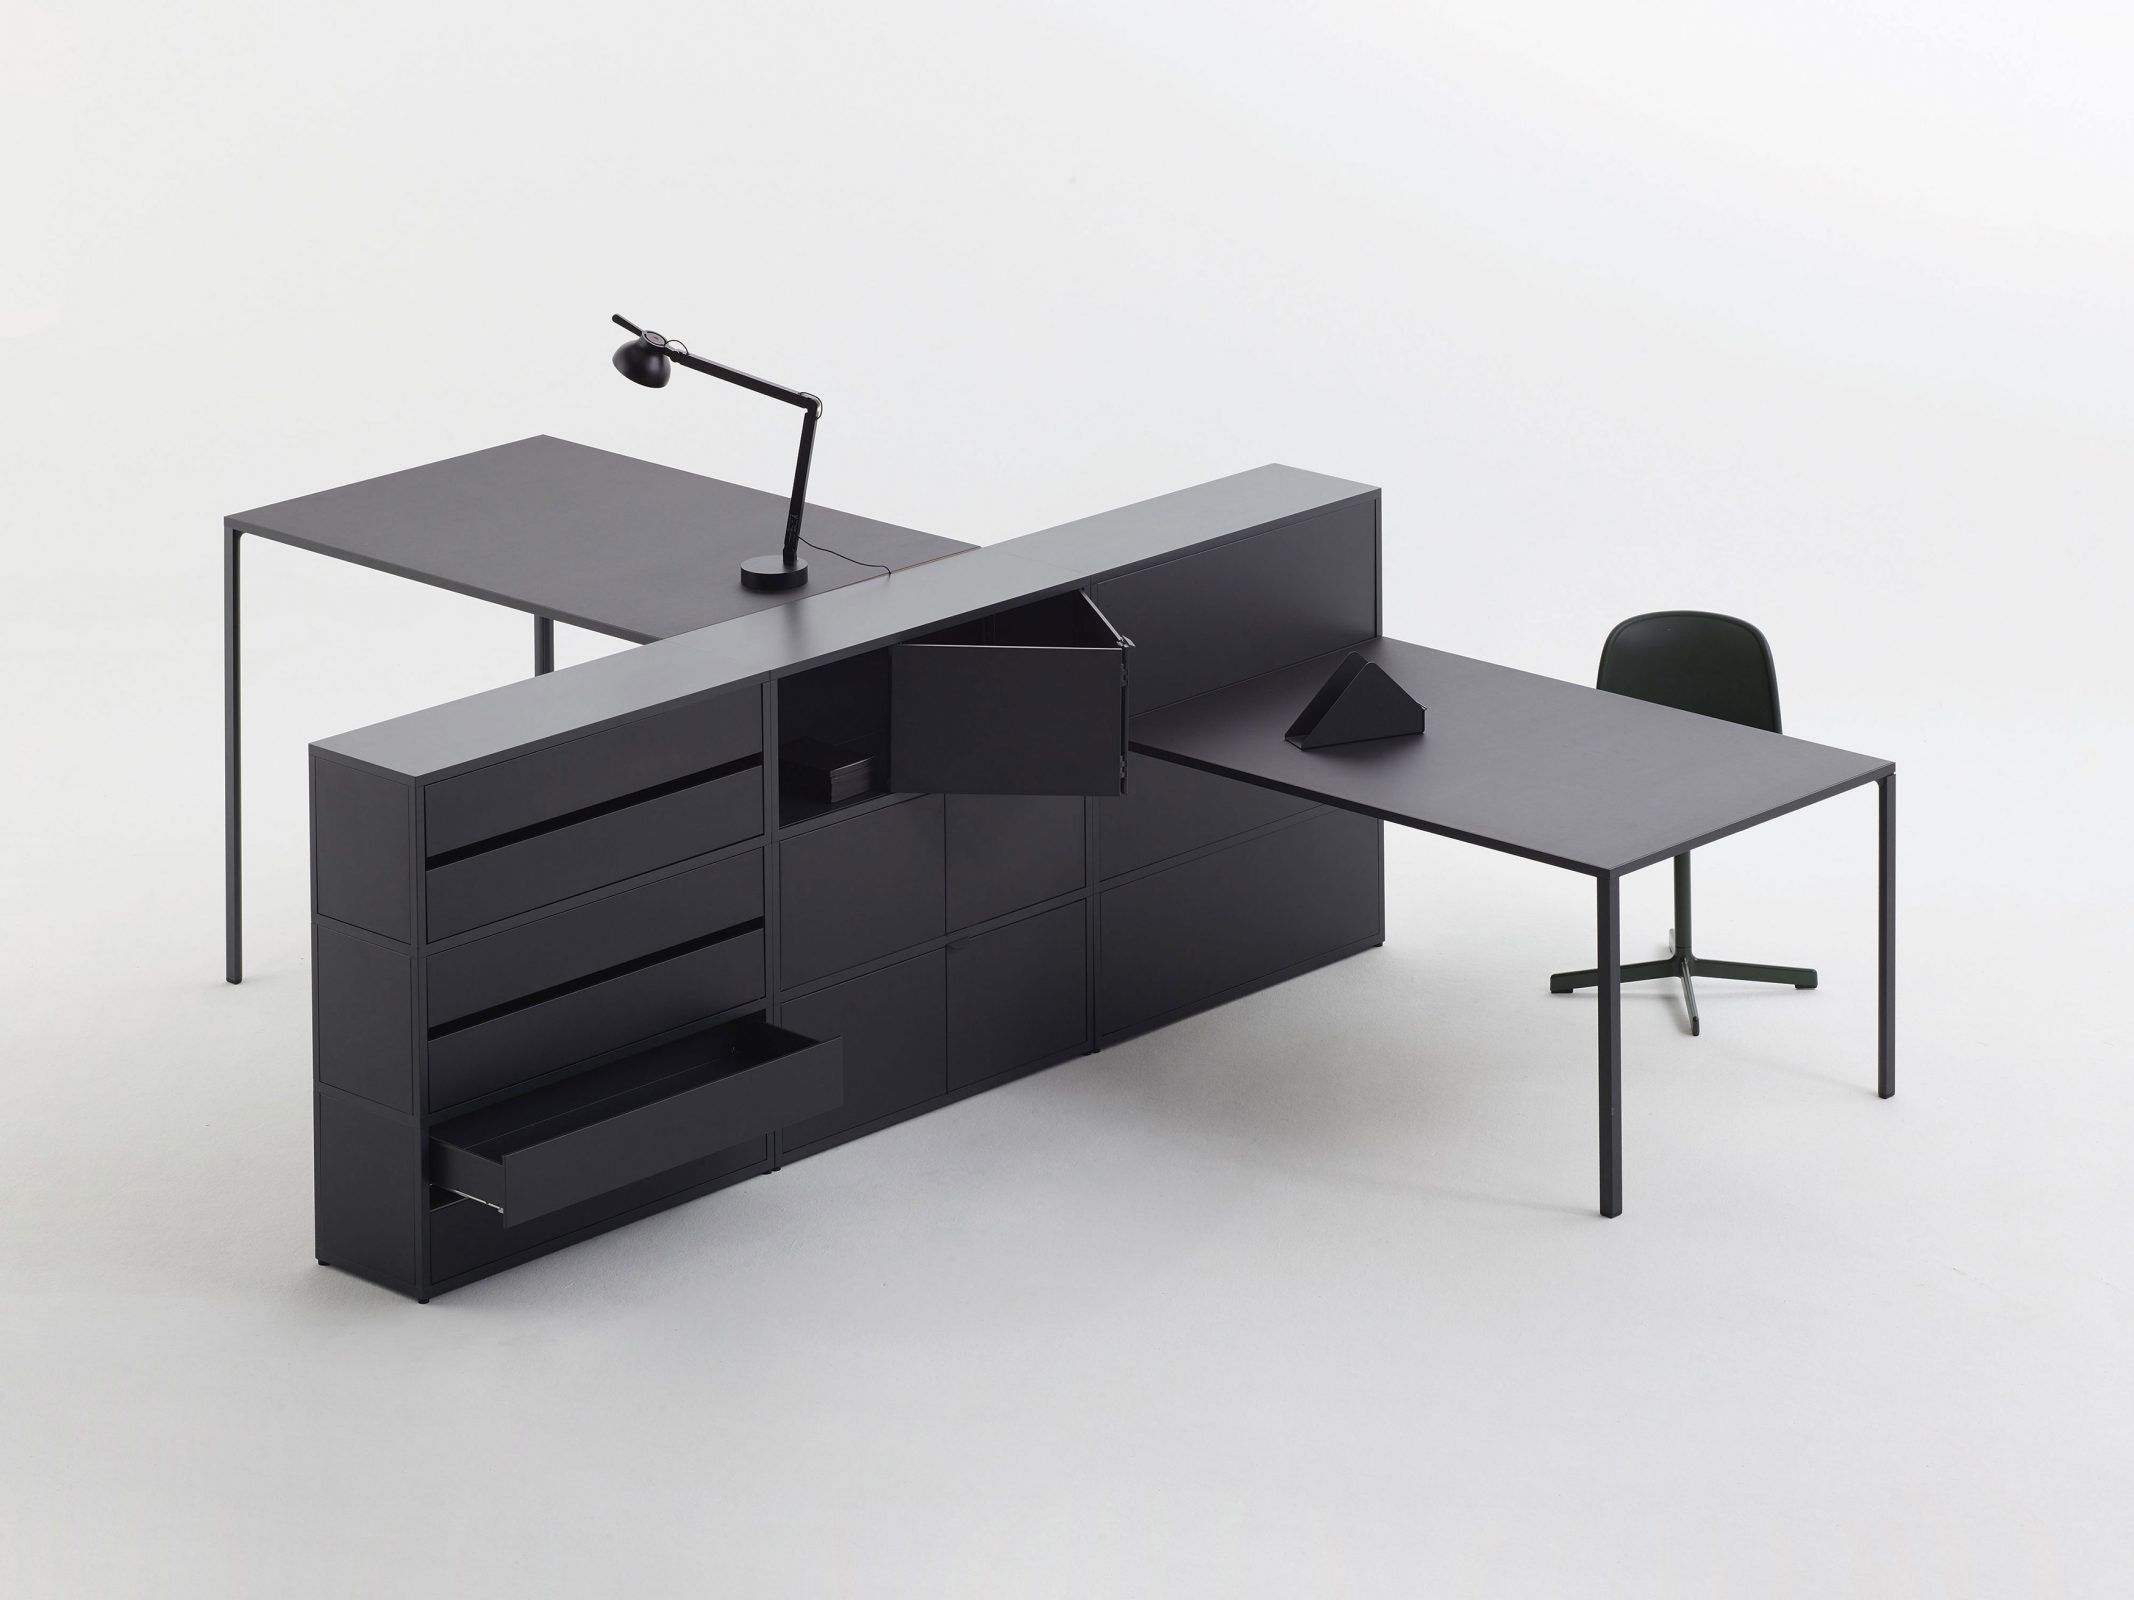 New Order 2 0 Is A Minimalist Shelving System Designed By Munich Based Studio Die System Furniture Modular Home Office Furniture Office Furniture Manufacturers